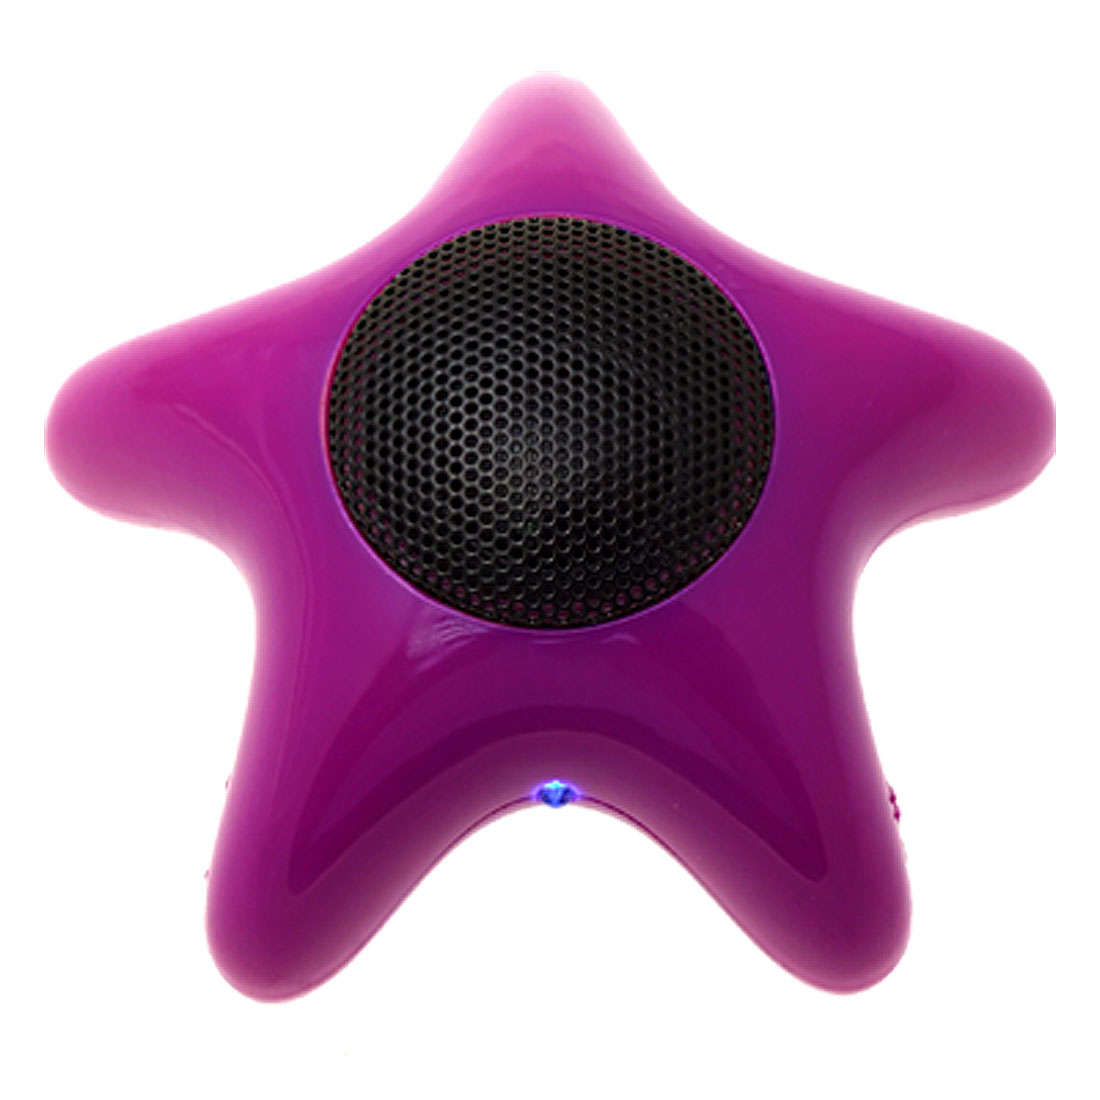 Pocket Starfish Speaker for PC Notebook Laptop Desktop Amaranth Pink